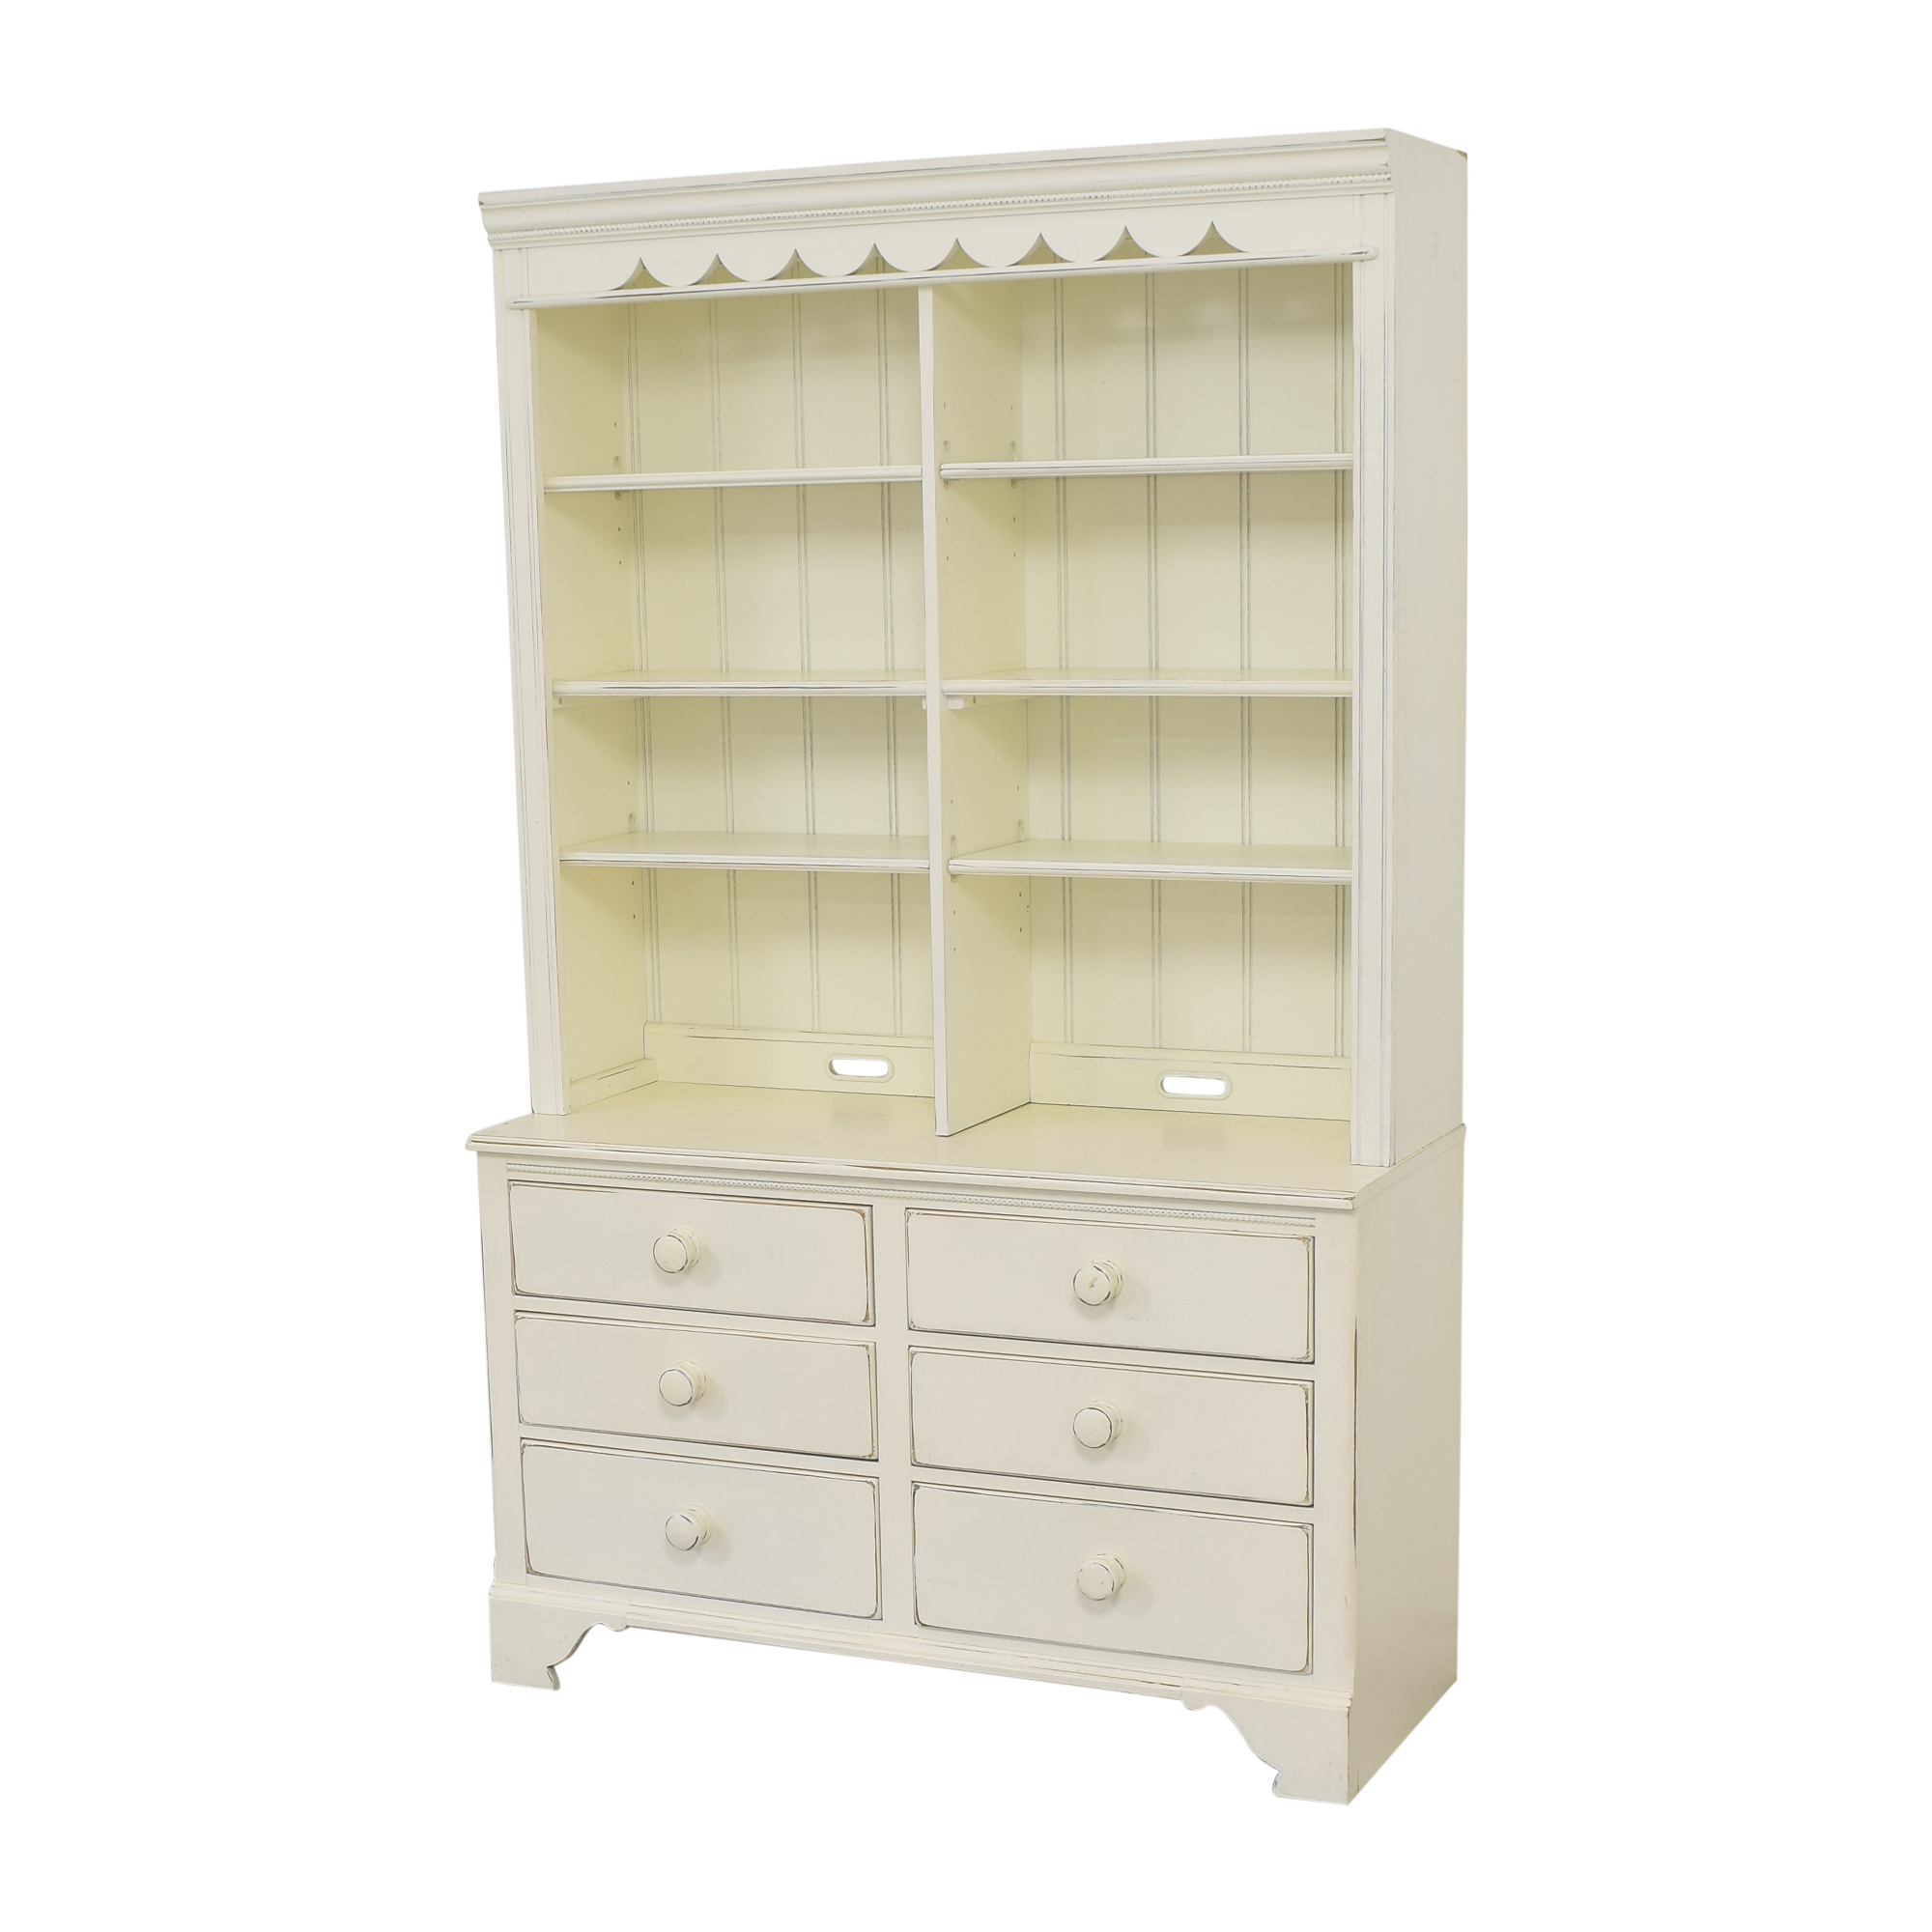 Betsy Cameron for Lexington Dresser with Hutch sale